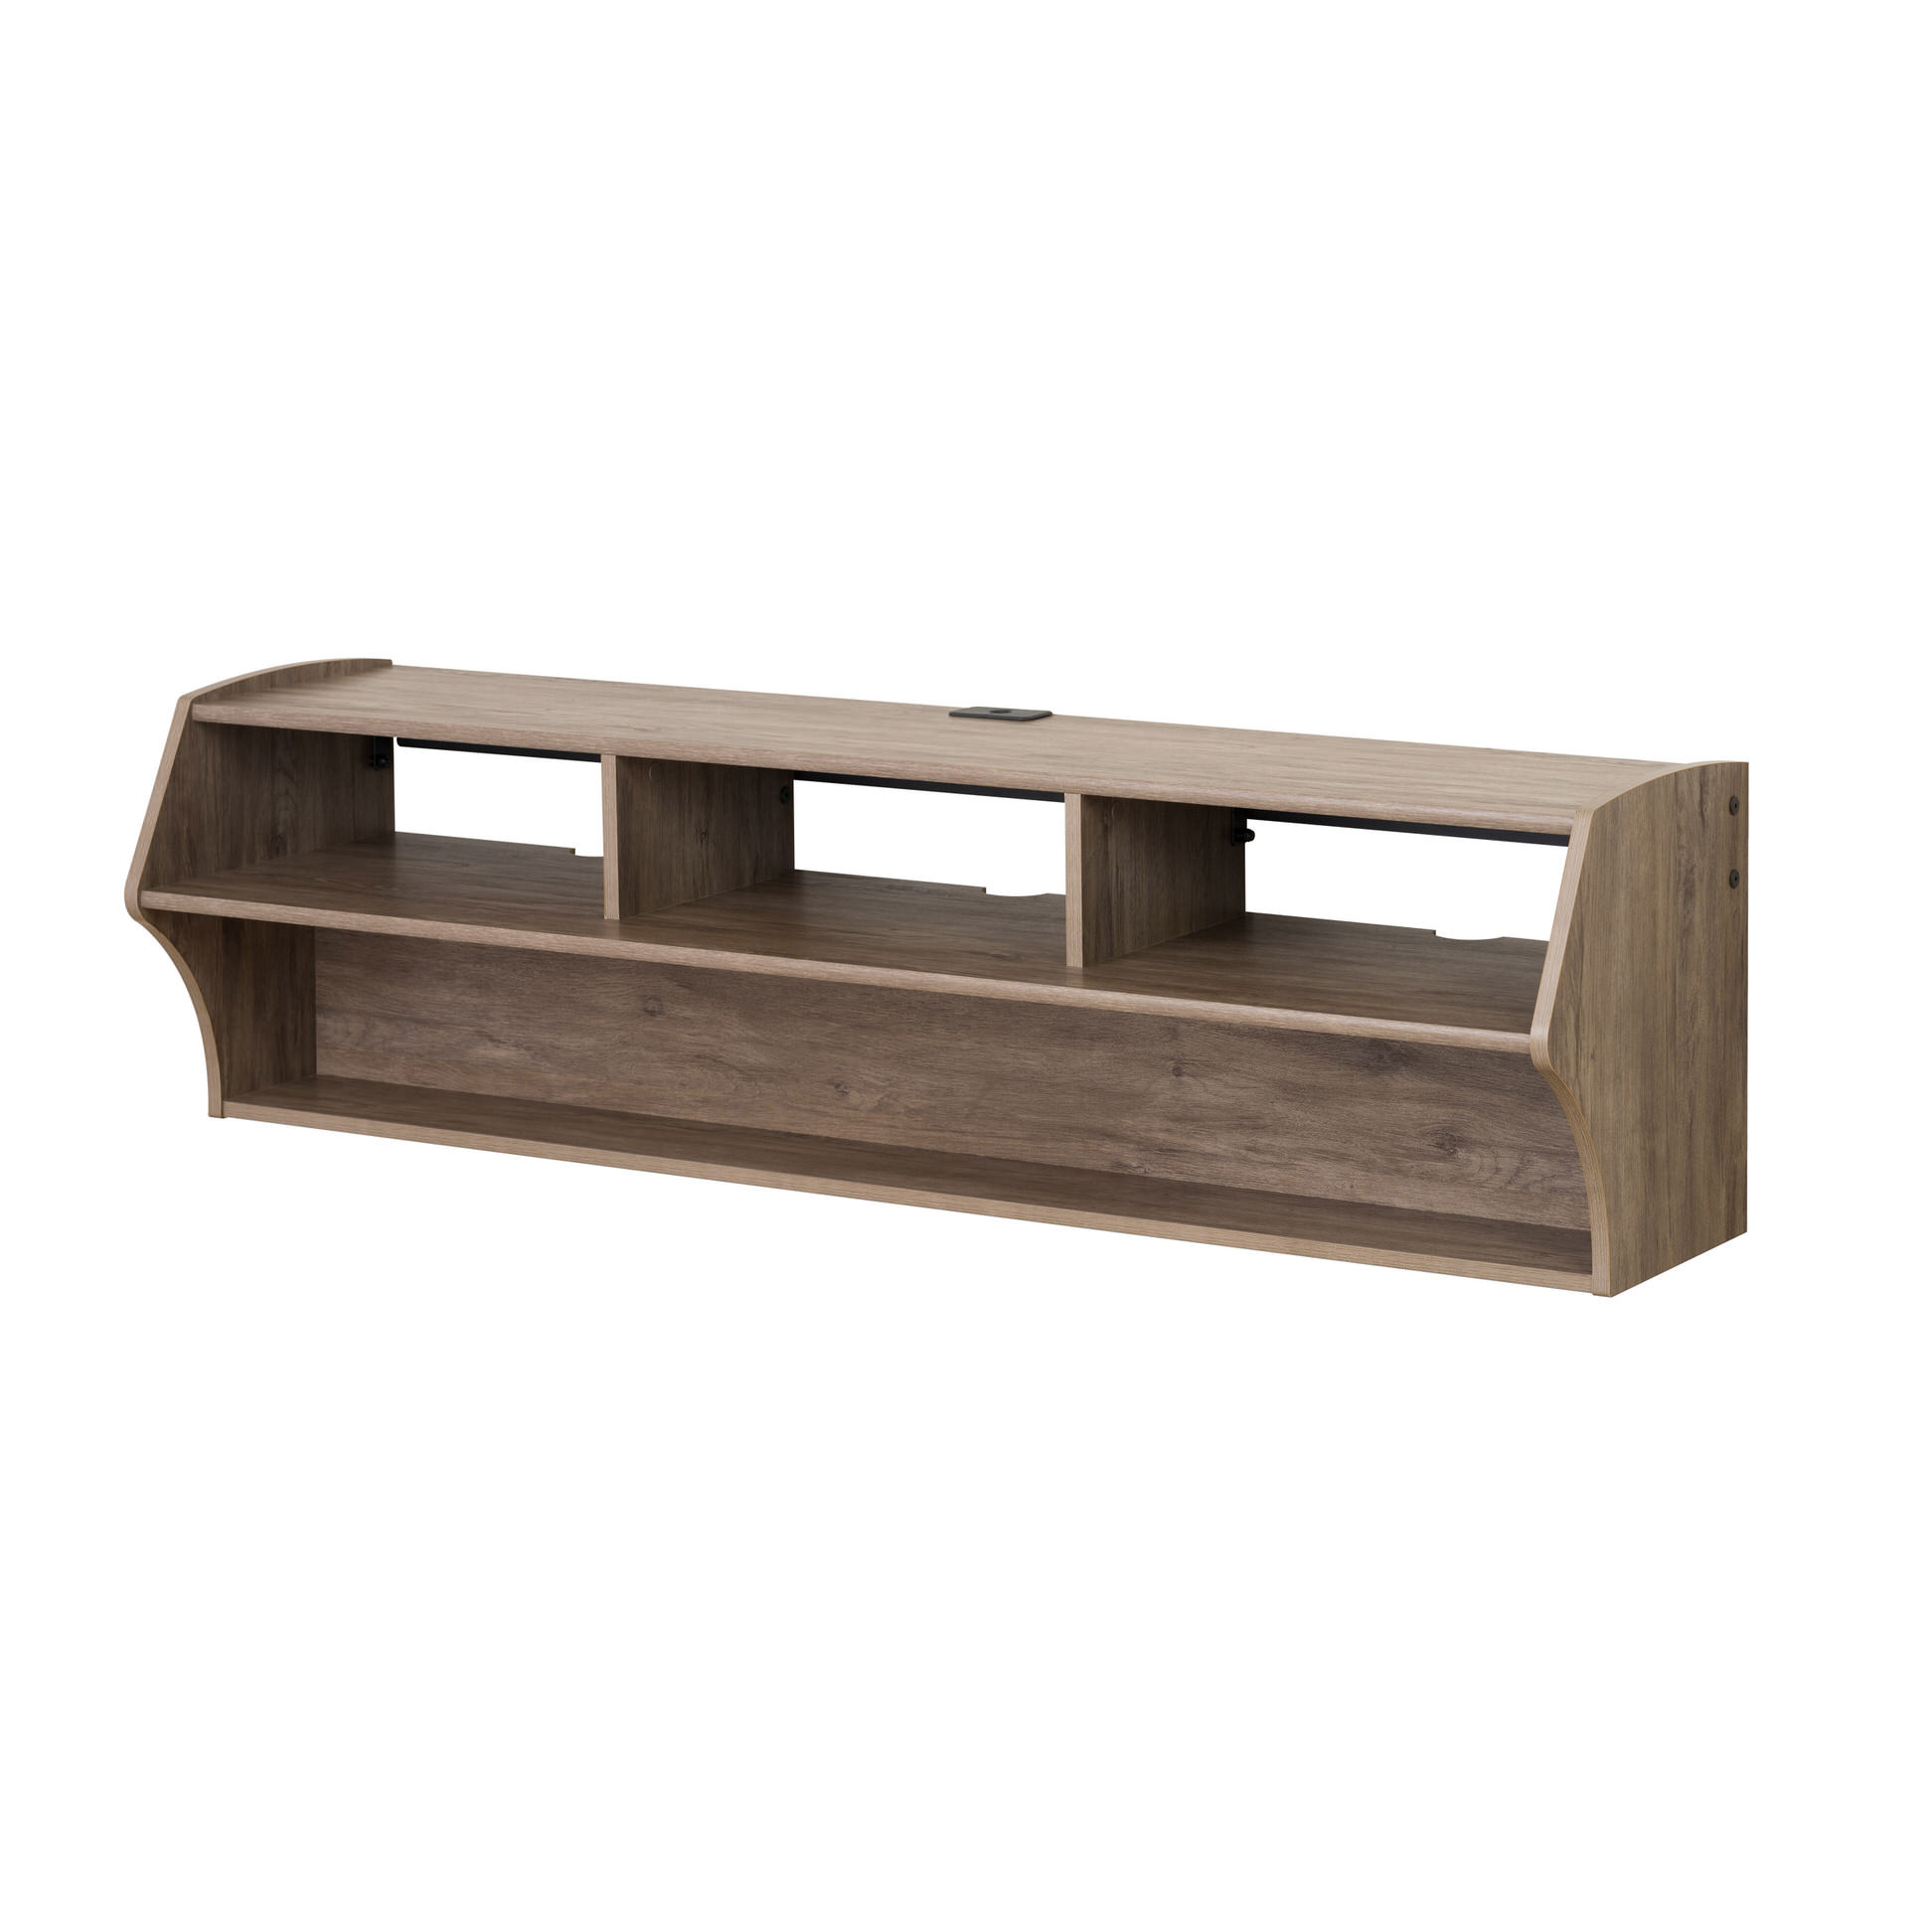 Altus Plus 58 Inch Floating TV Stand by Prepac